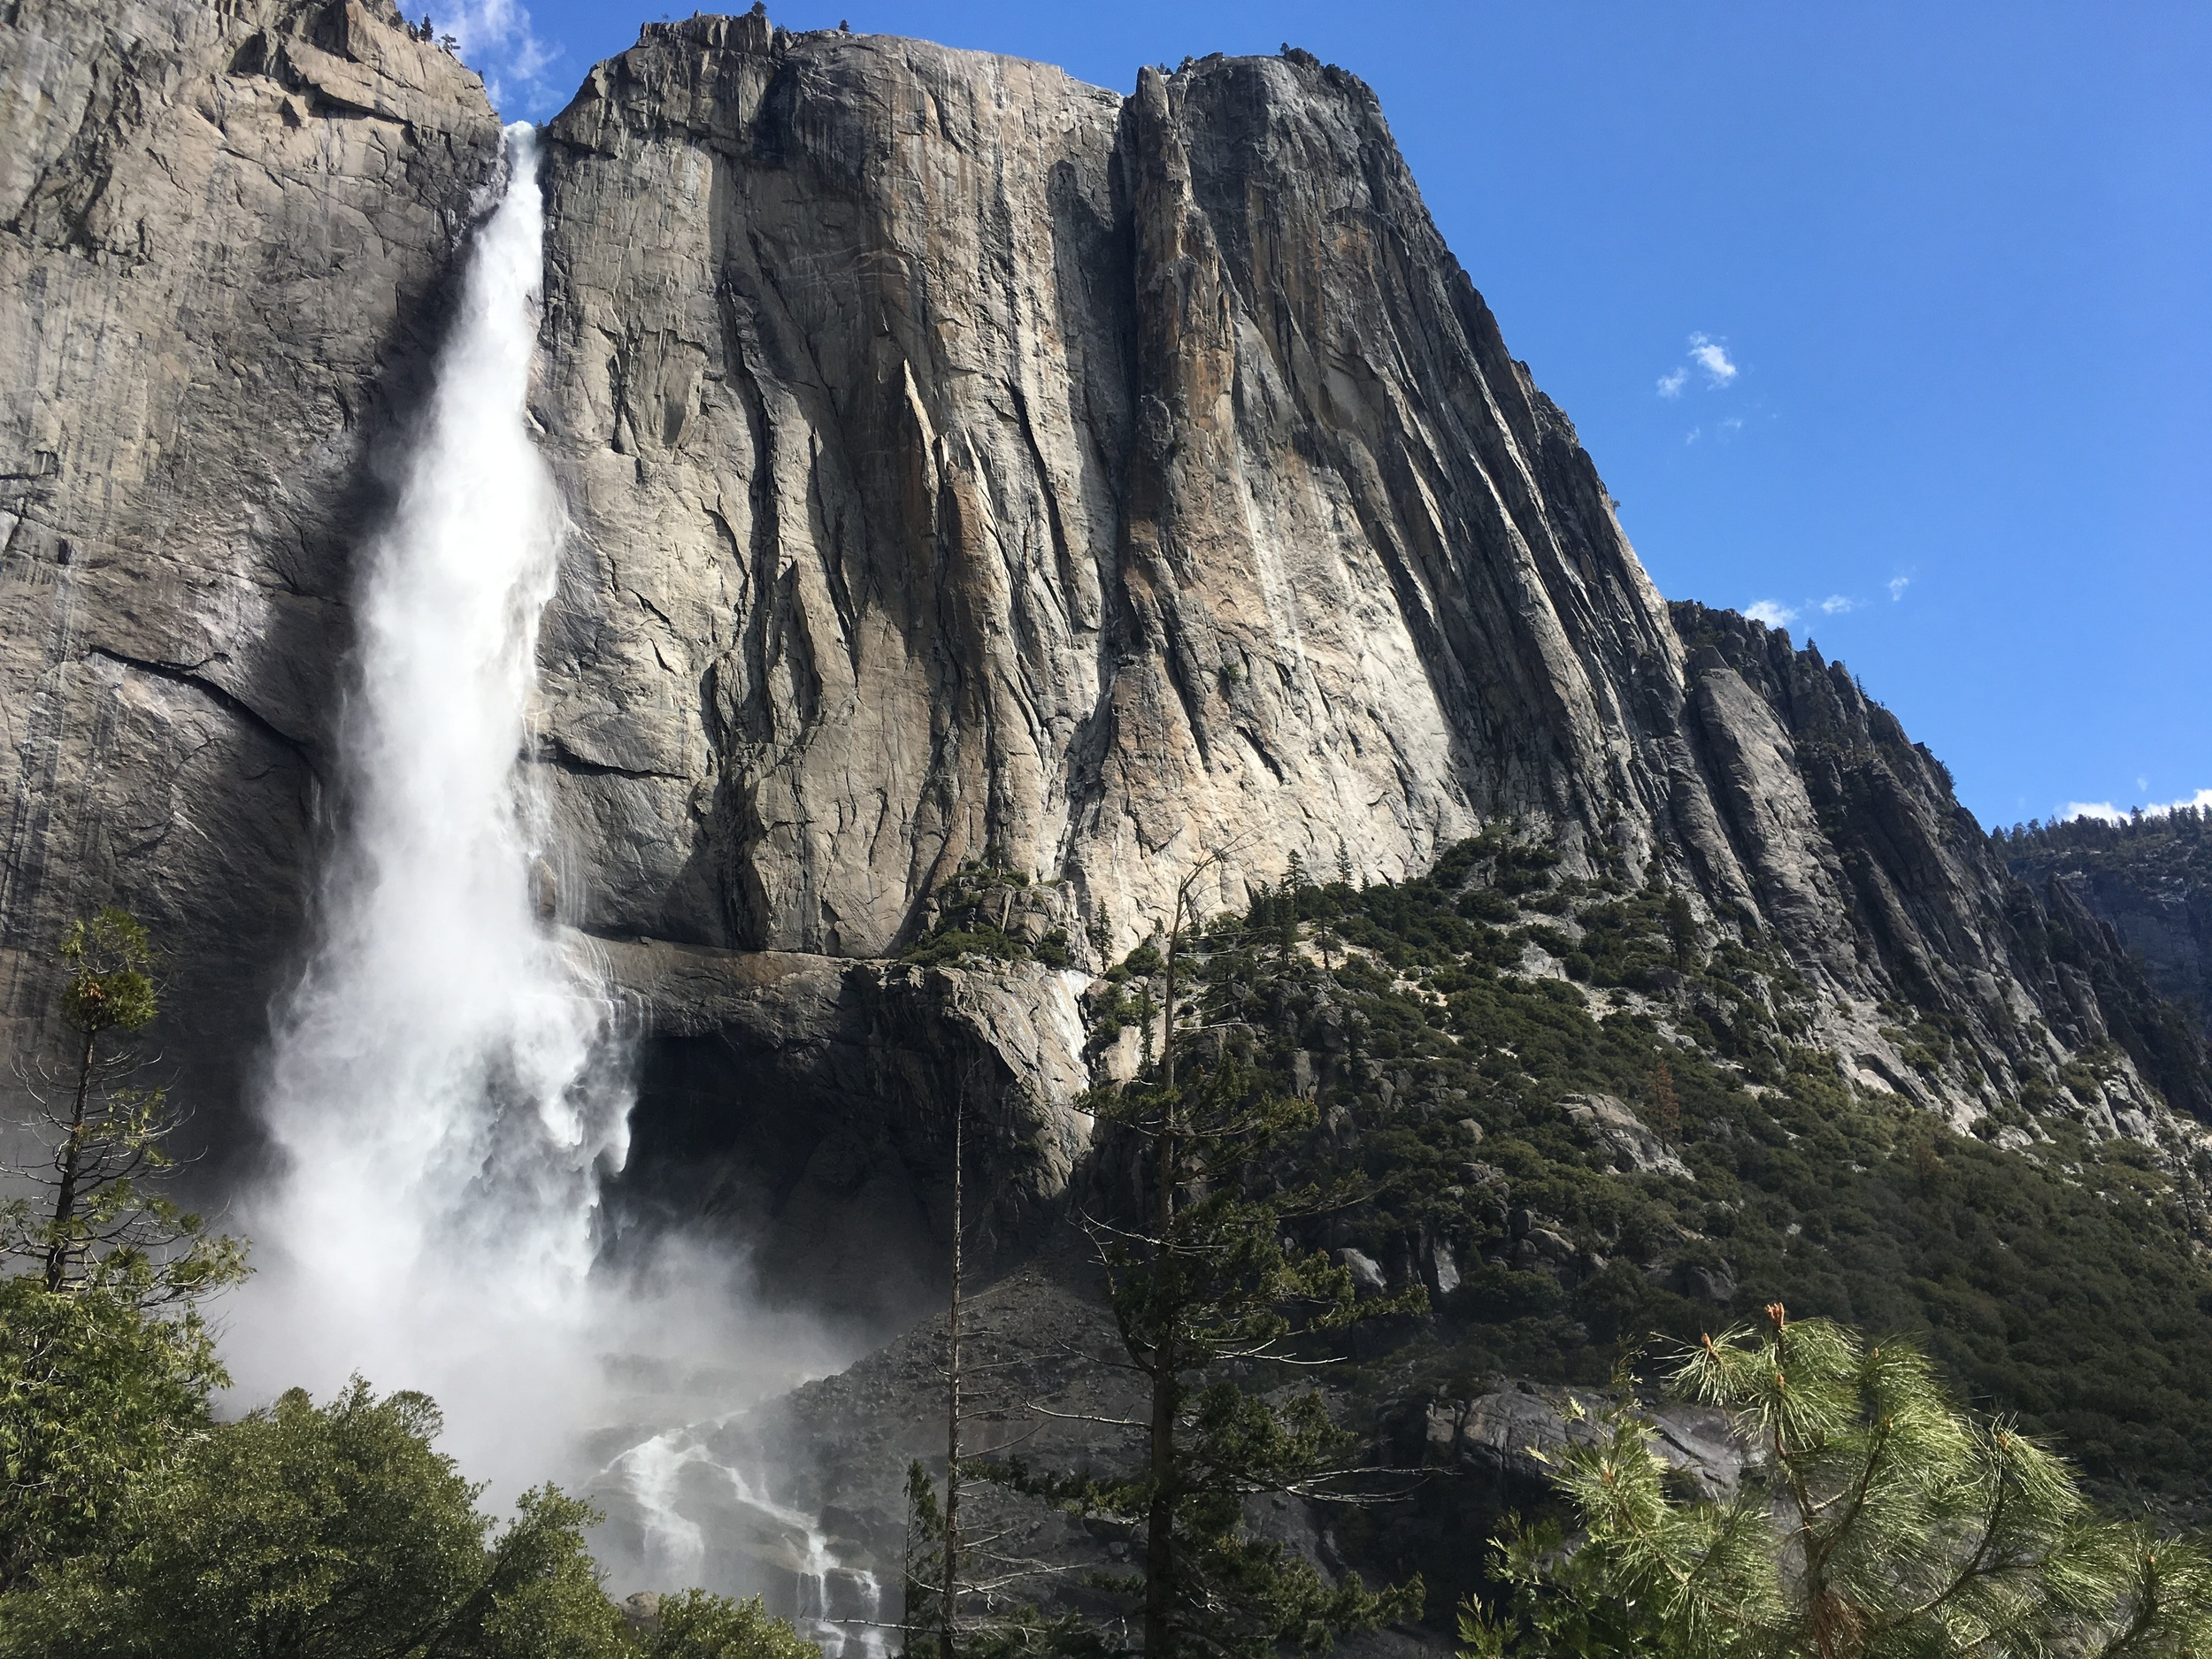 Upper Yosemite Falls from the trail